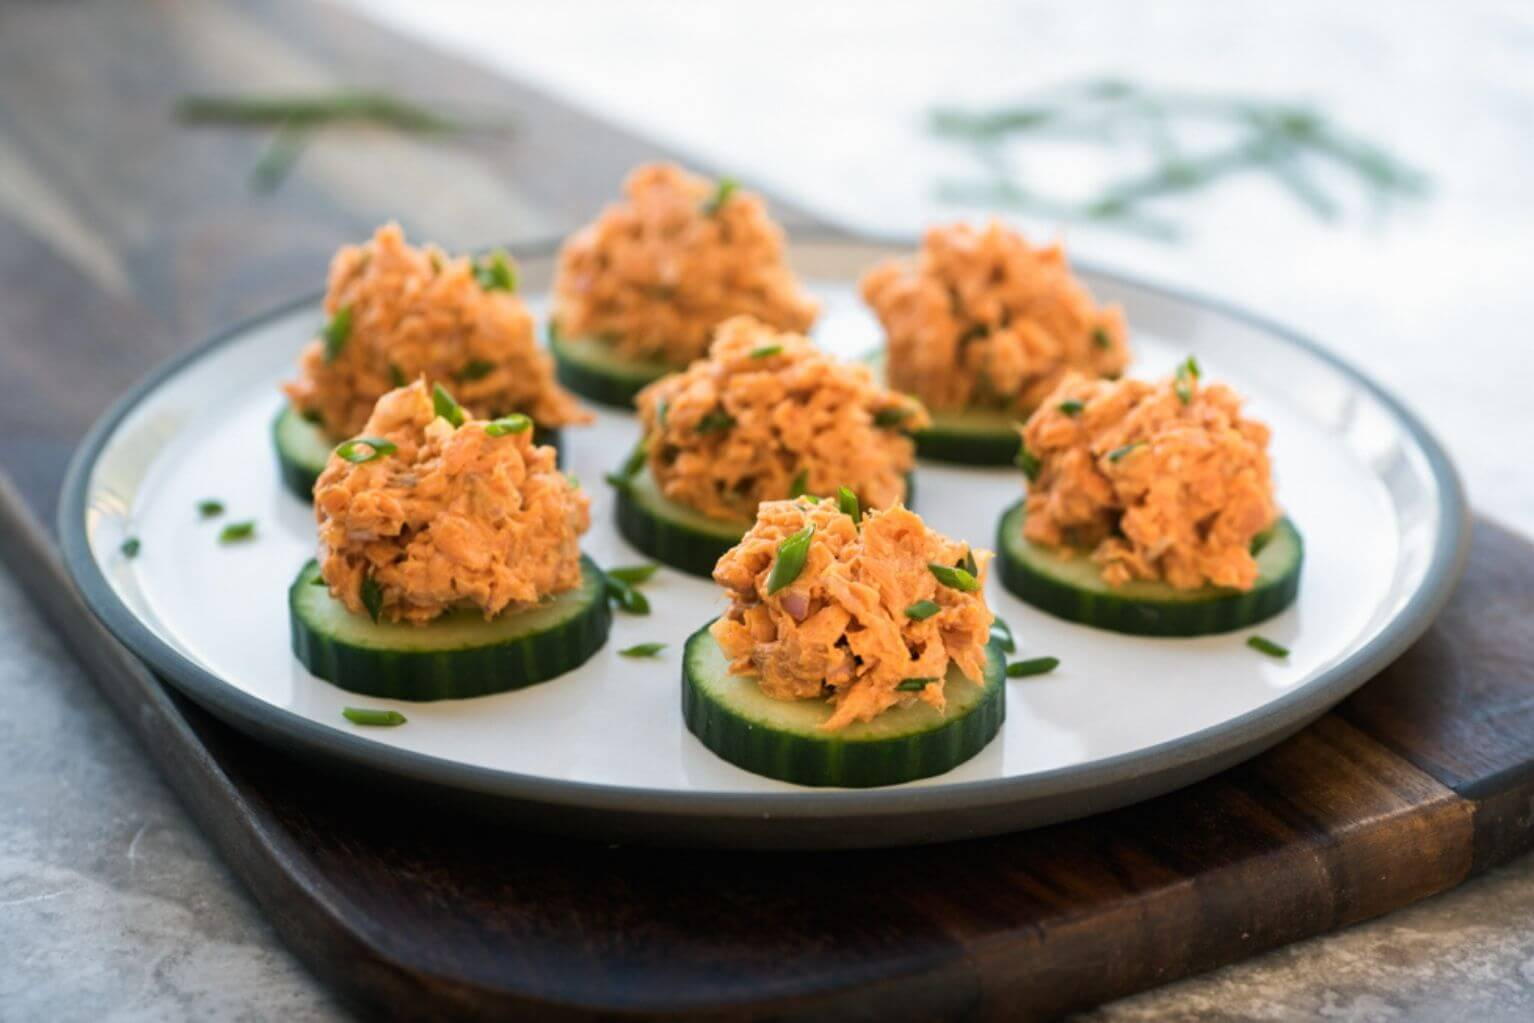 spicy salmon and cucumber sandwiches on a plate